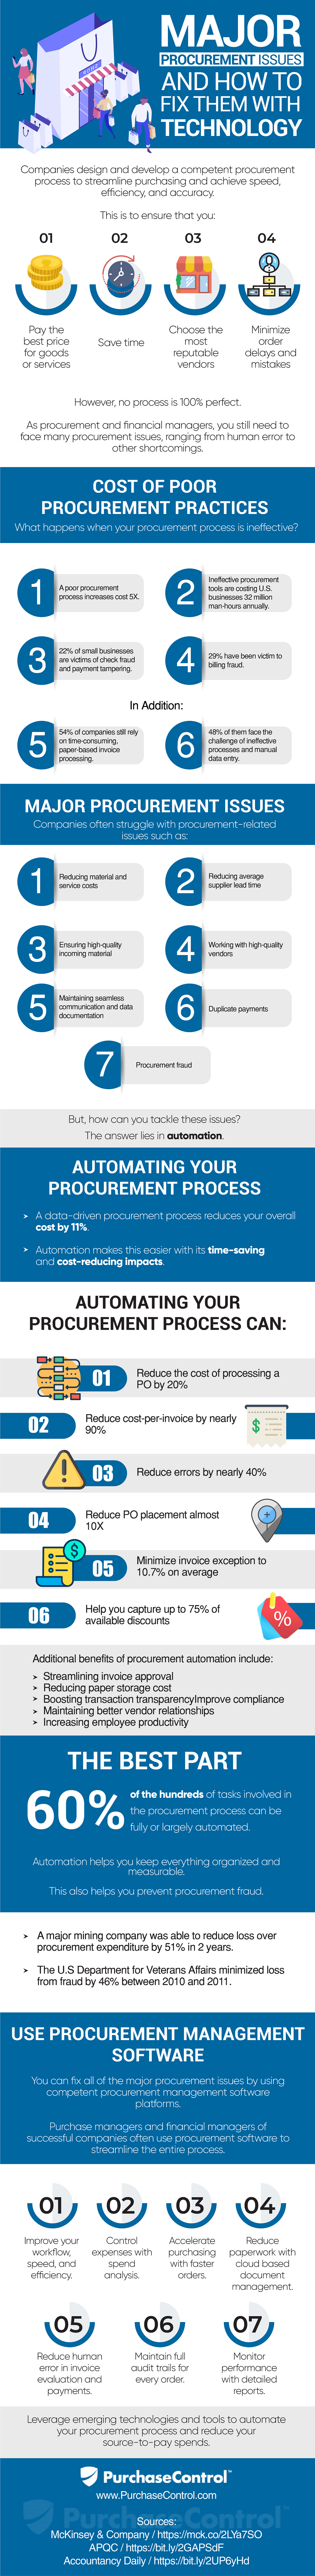 How Technology Can Solve Common Procurement Issues - How can technology help in solving common business procurement issues? This infograph do justice to the question.